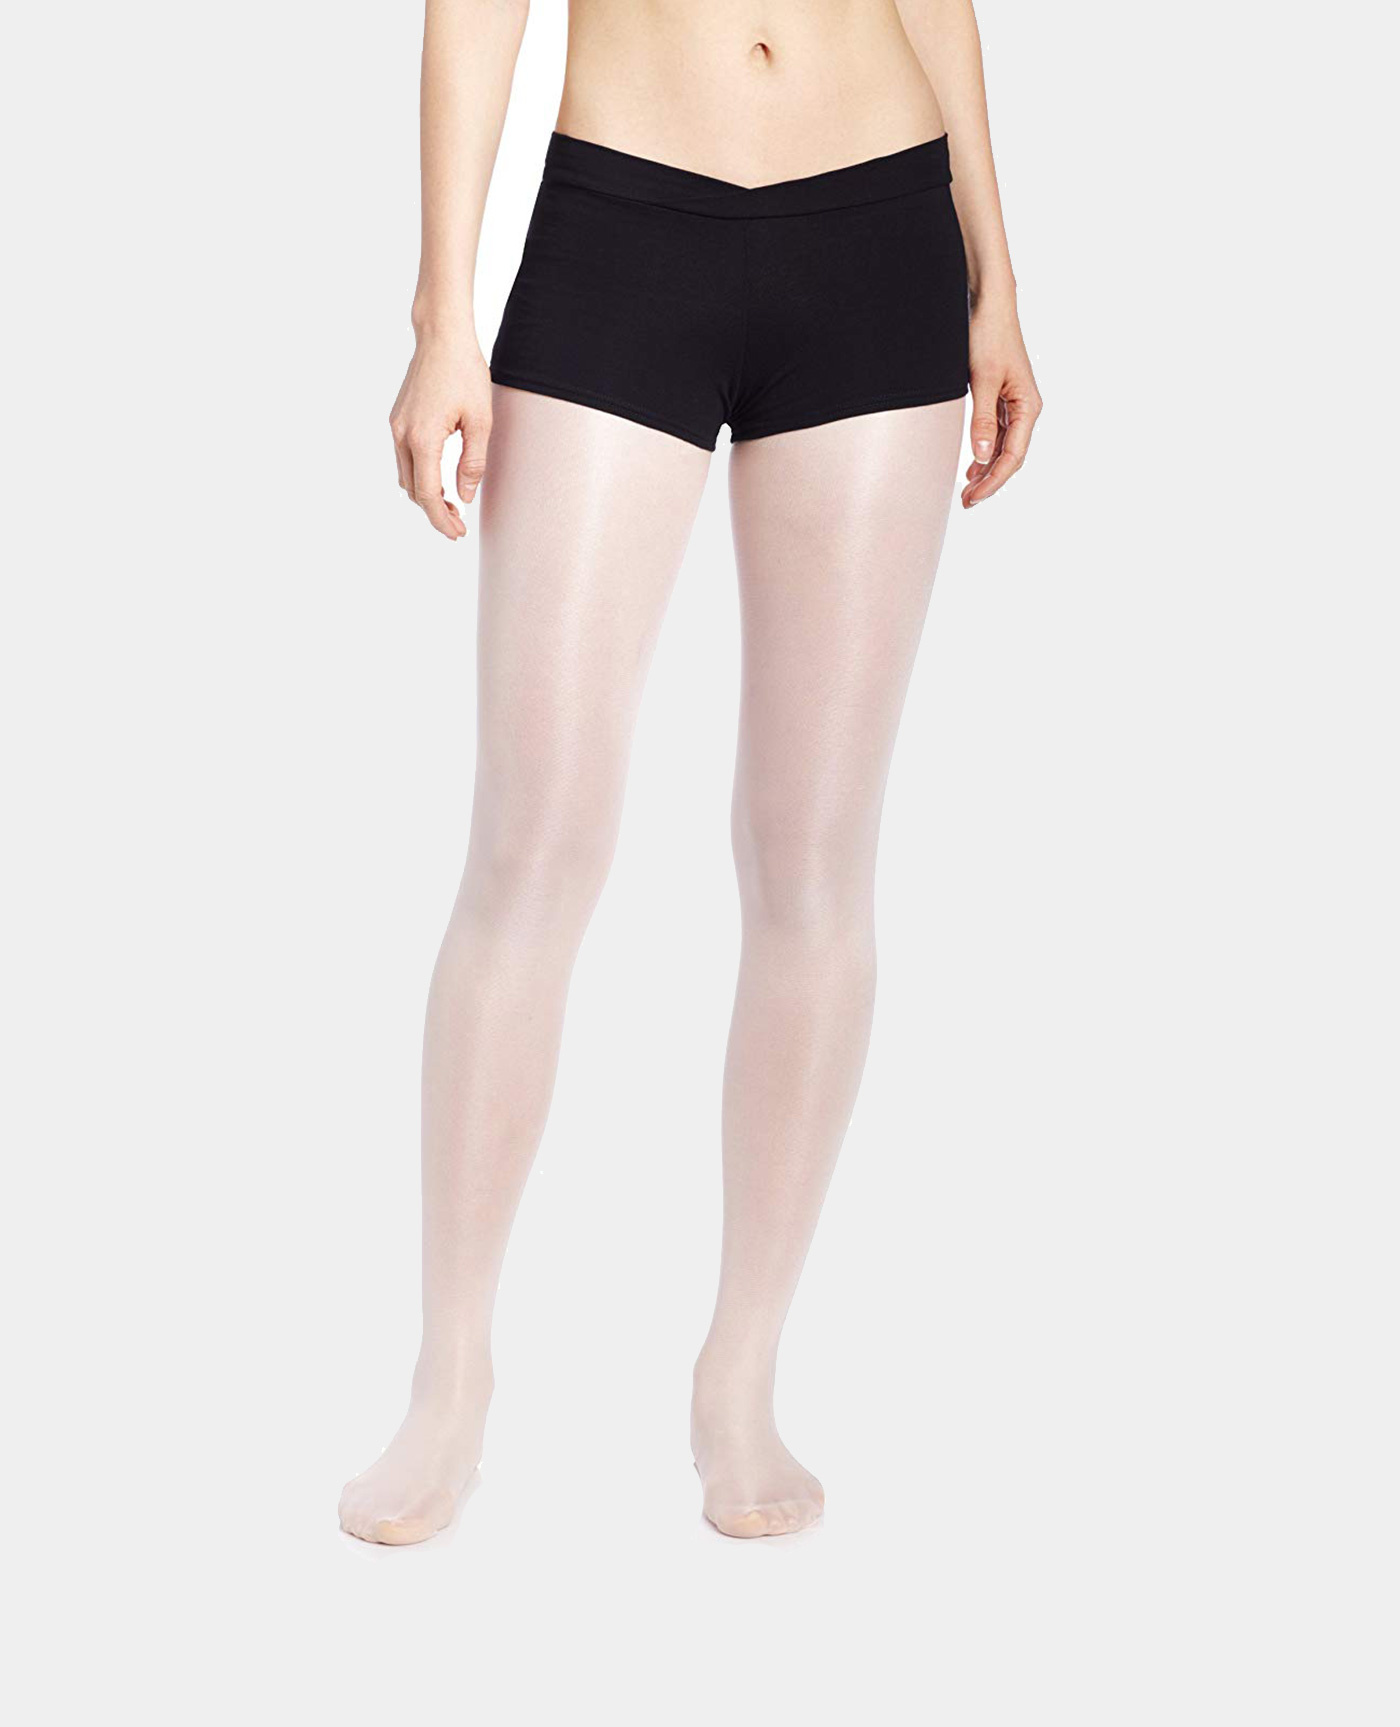 CAPEZIO BOY CUT SHORTS